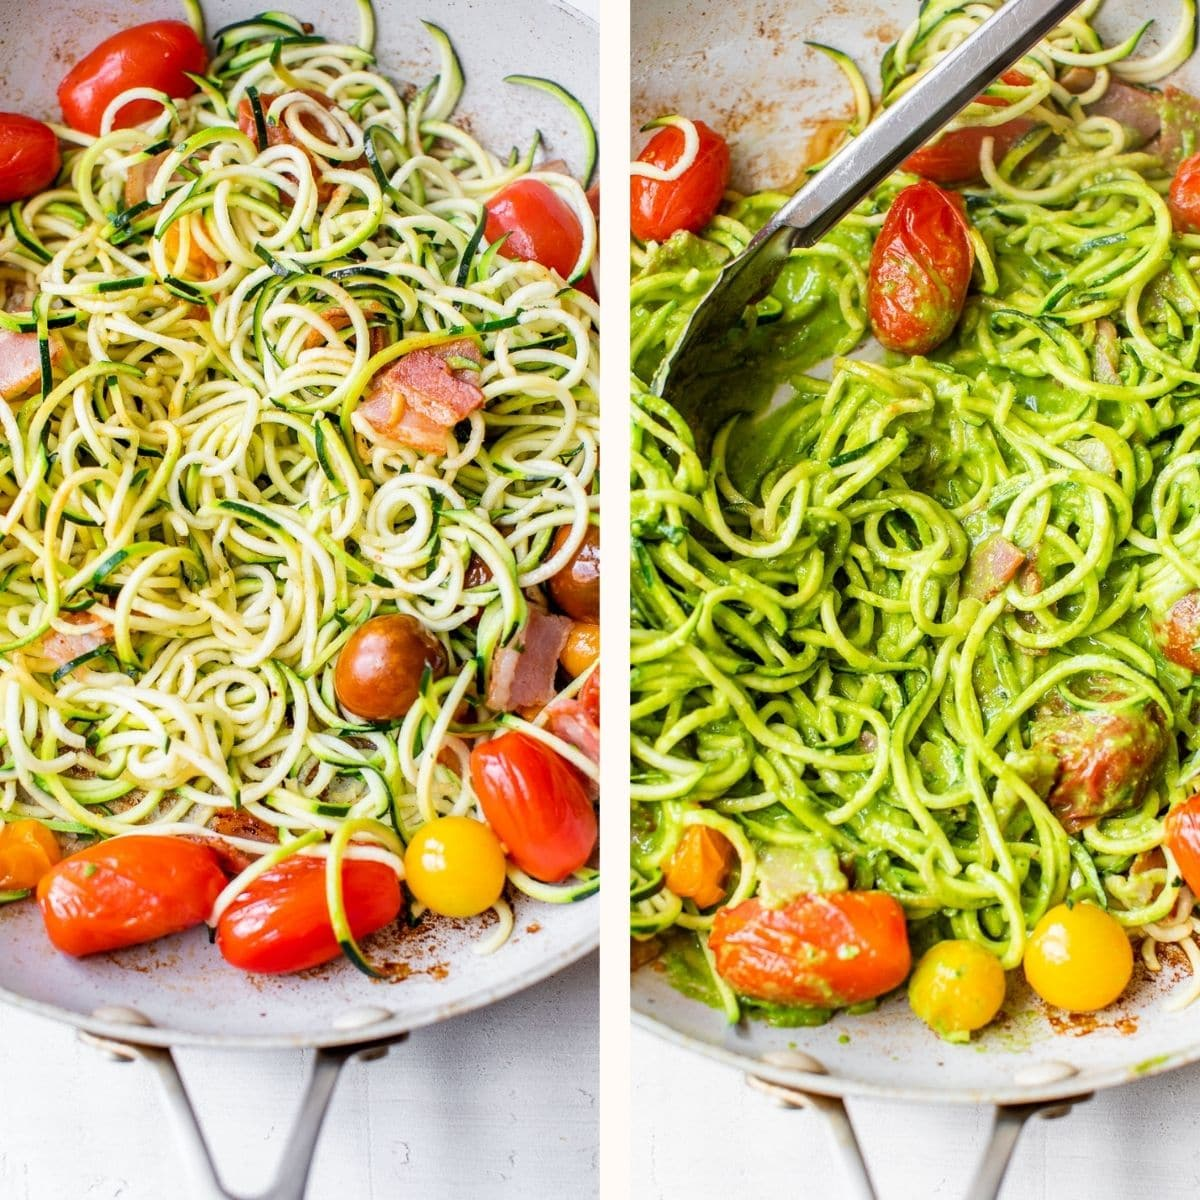 zucchini noodles in a skillet with tomatoes and bacon